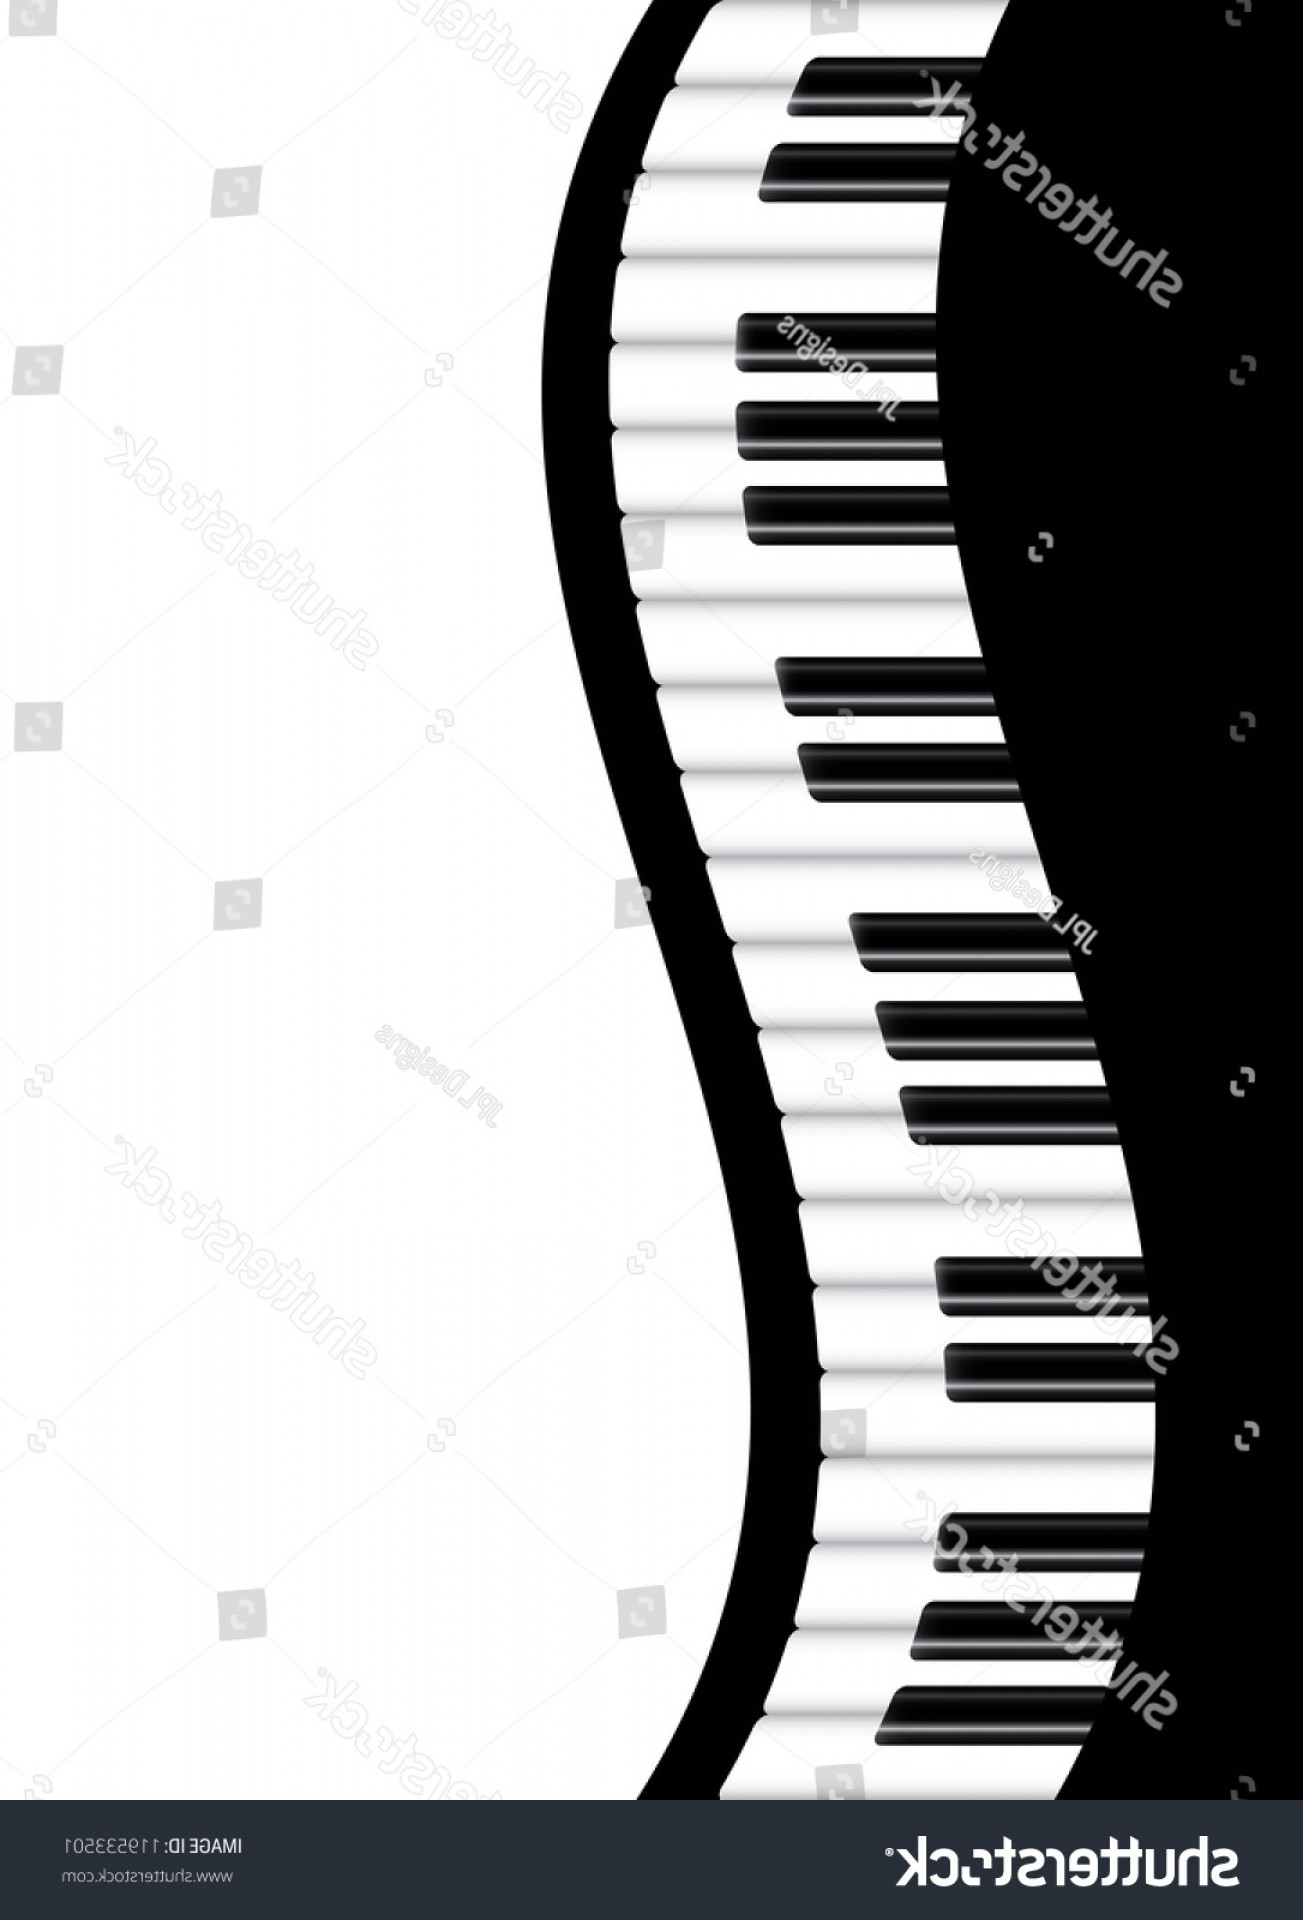 Musical Keyboard Vector: Piano Keyboards Wavy Border Background Illustration